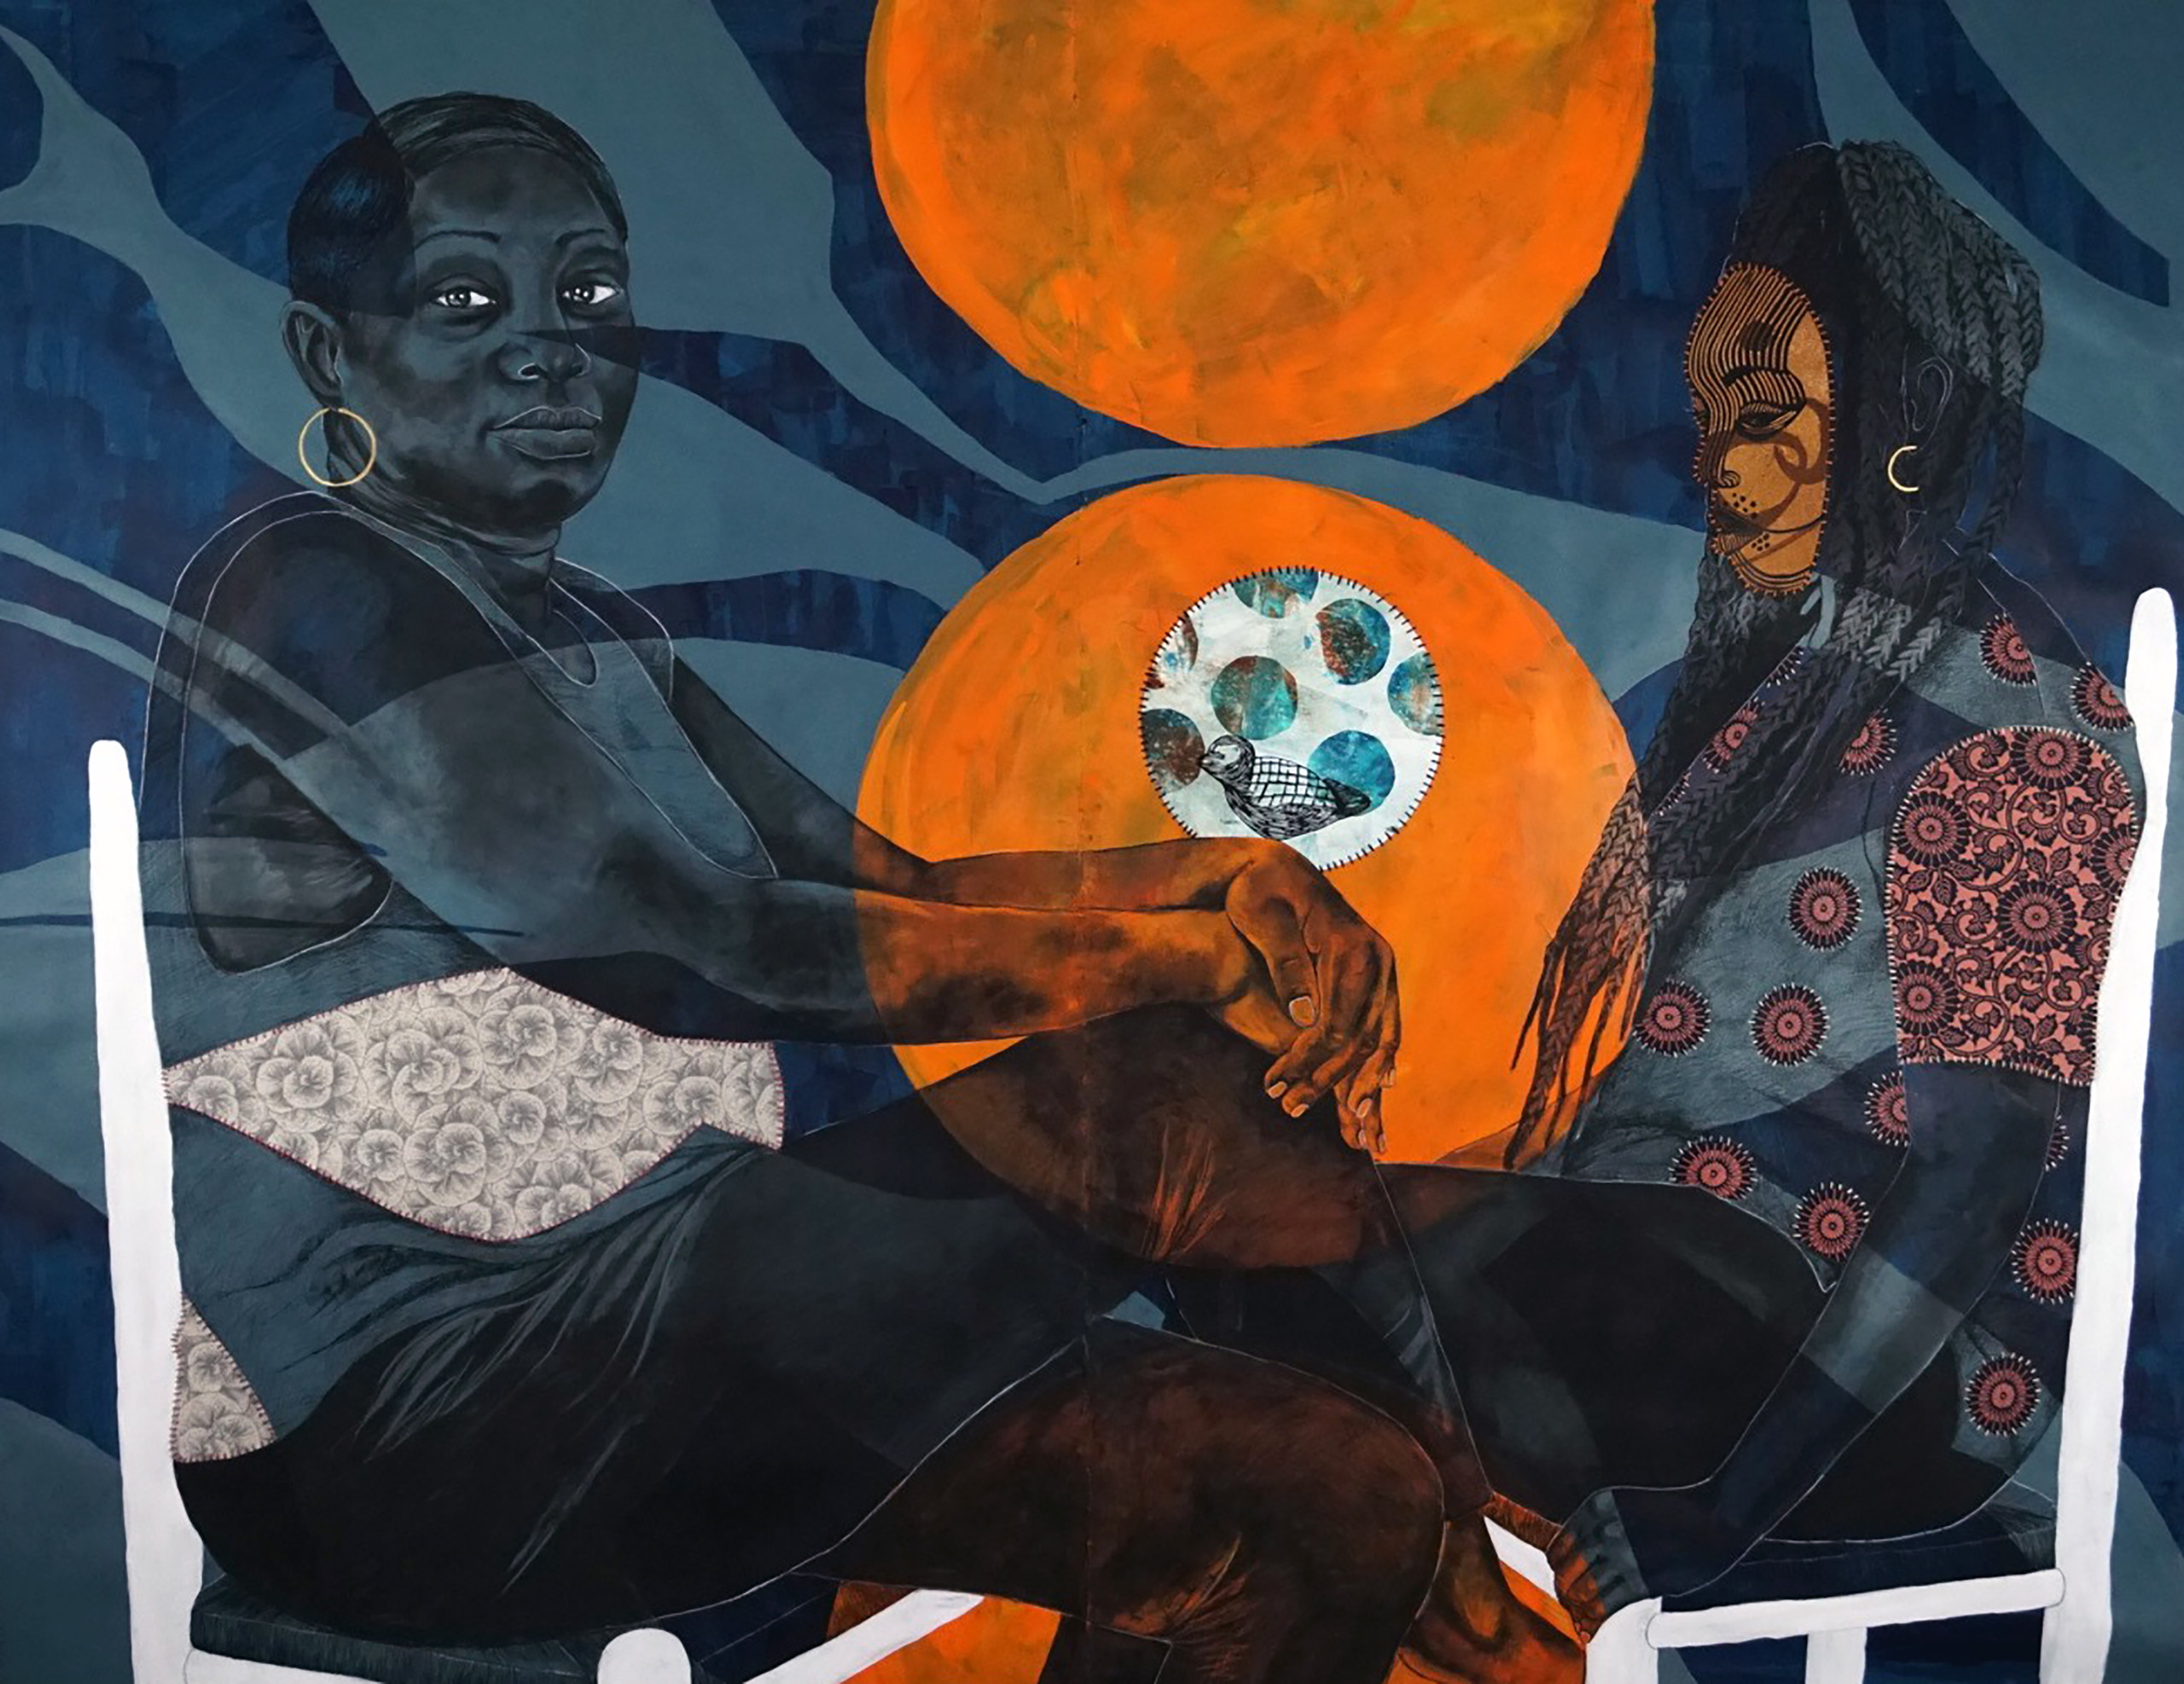 A mixed-media work shows two seated figures facing each other; the first woman sits cross-legged staring confidently out at viewer while the second woman is masked and gazes elsewhere. In the background blue abstract shapes with two orange orbs fill the space between them.